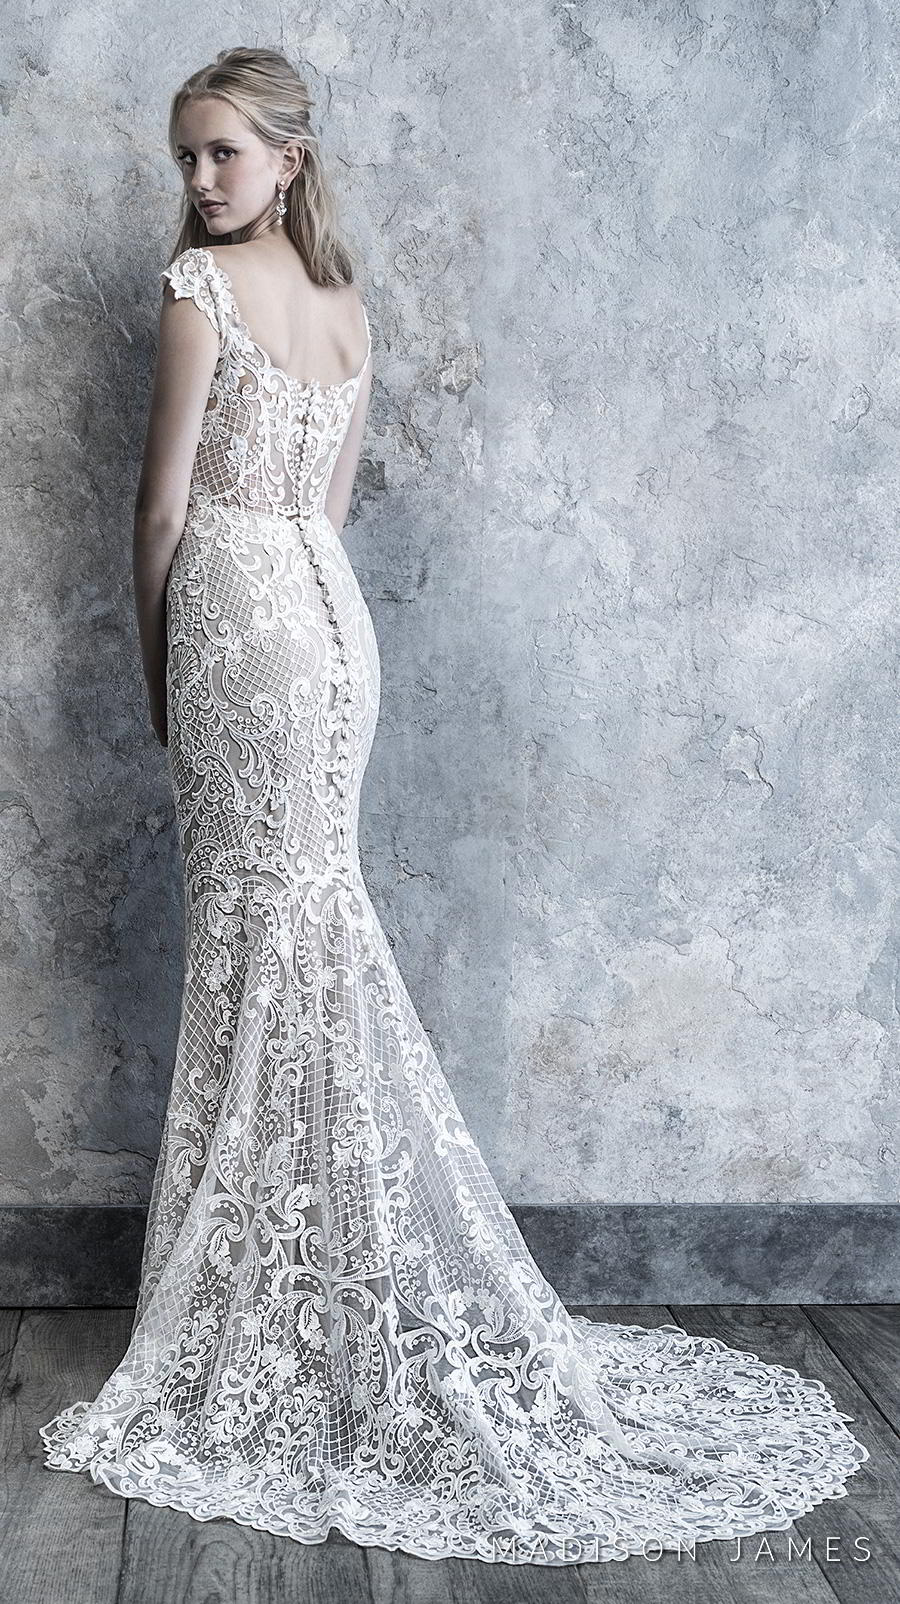 madison james 2019 bridal cap sleeves semi square scoop neckline full embellishment elegant fit and flare wedding dress semi back chapel train (517) bv